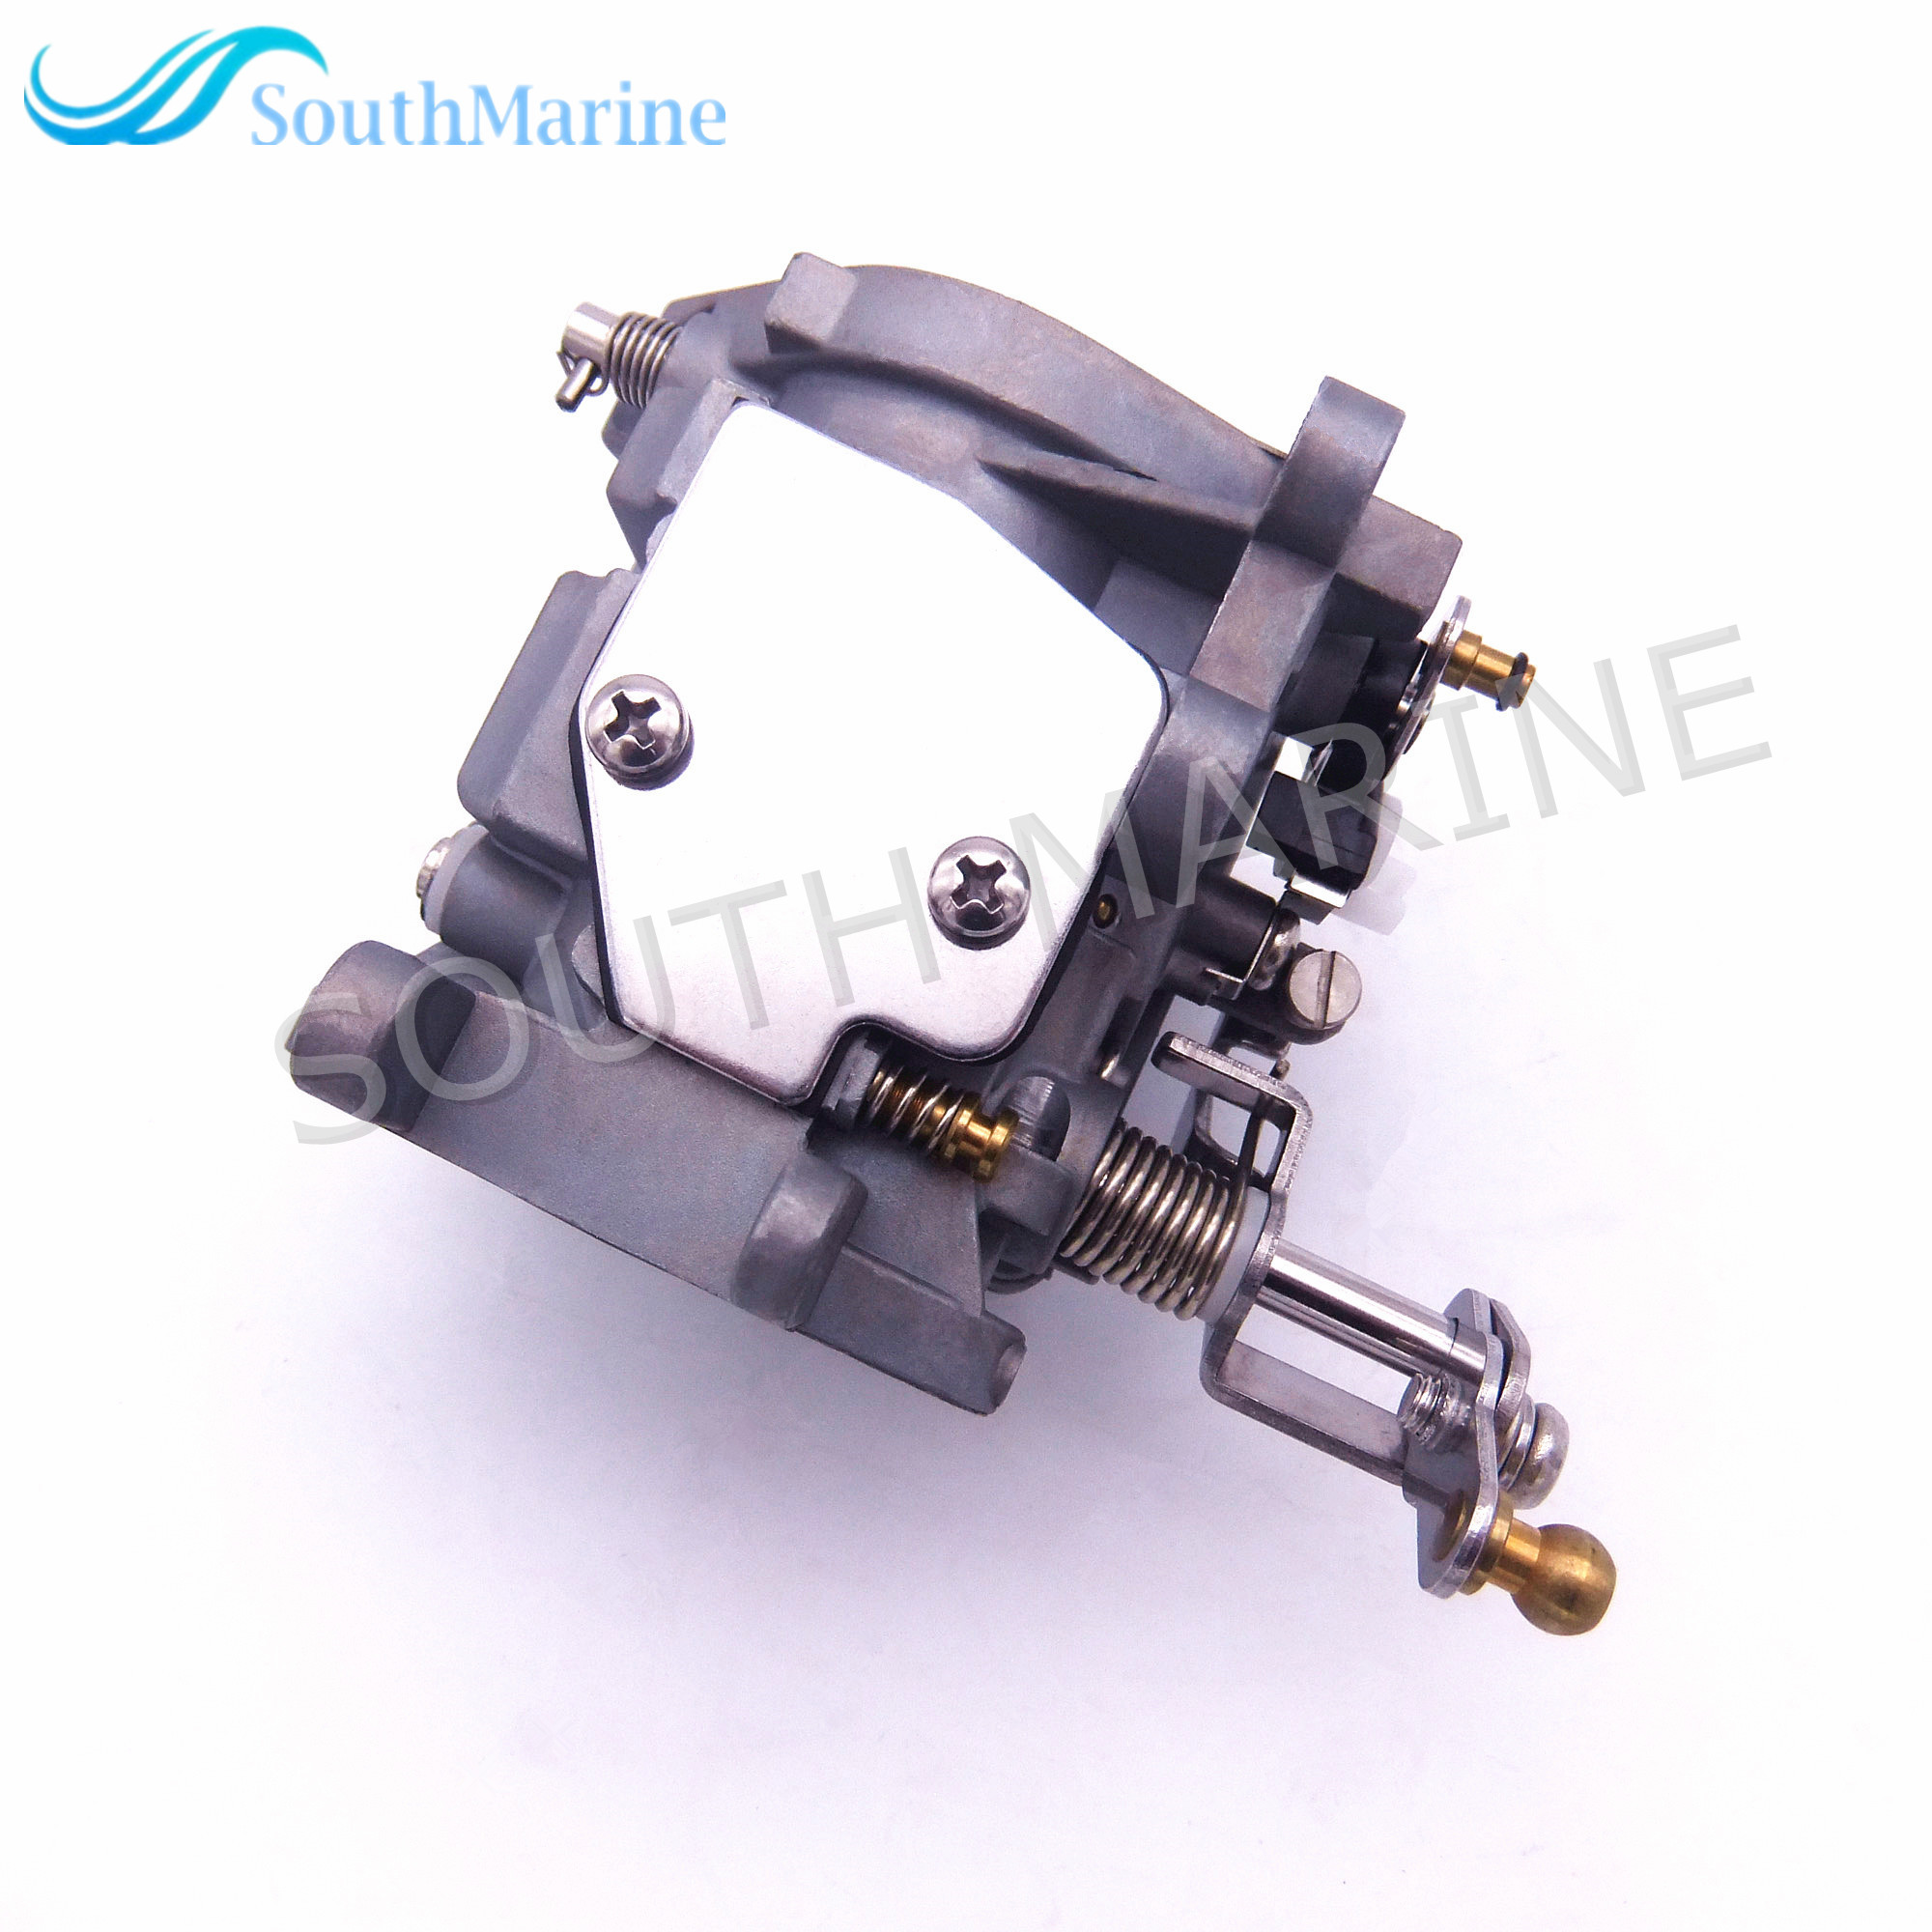 Outboard Engine Boat Motor Carburetor Assy 69P-14301-00  69S-14301-00  for Yahama 2-stroke E25B E30H  25B 30H Free Shipping fit yamaha outboard 61n 45510 00 00 drive shaft assy 61n 45510